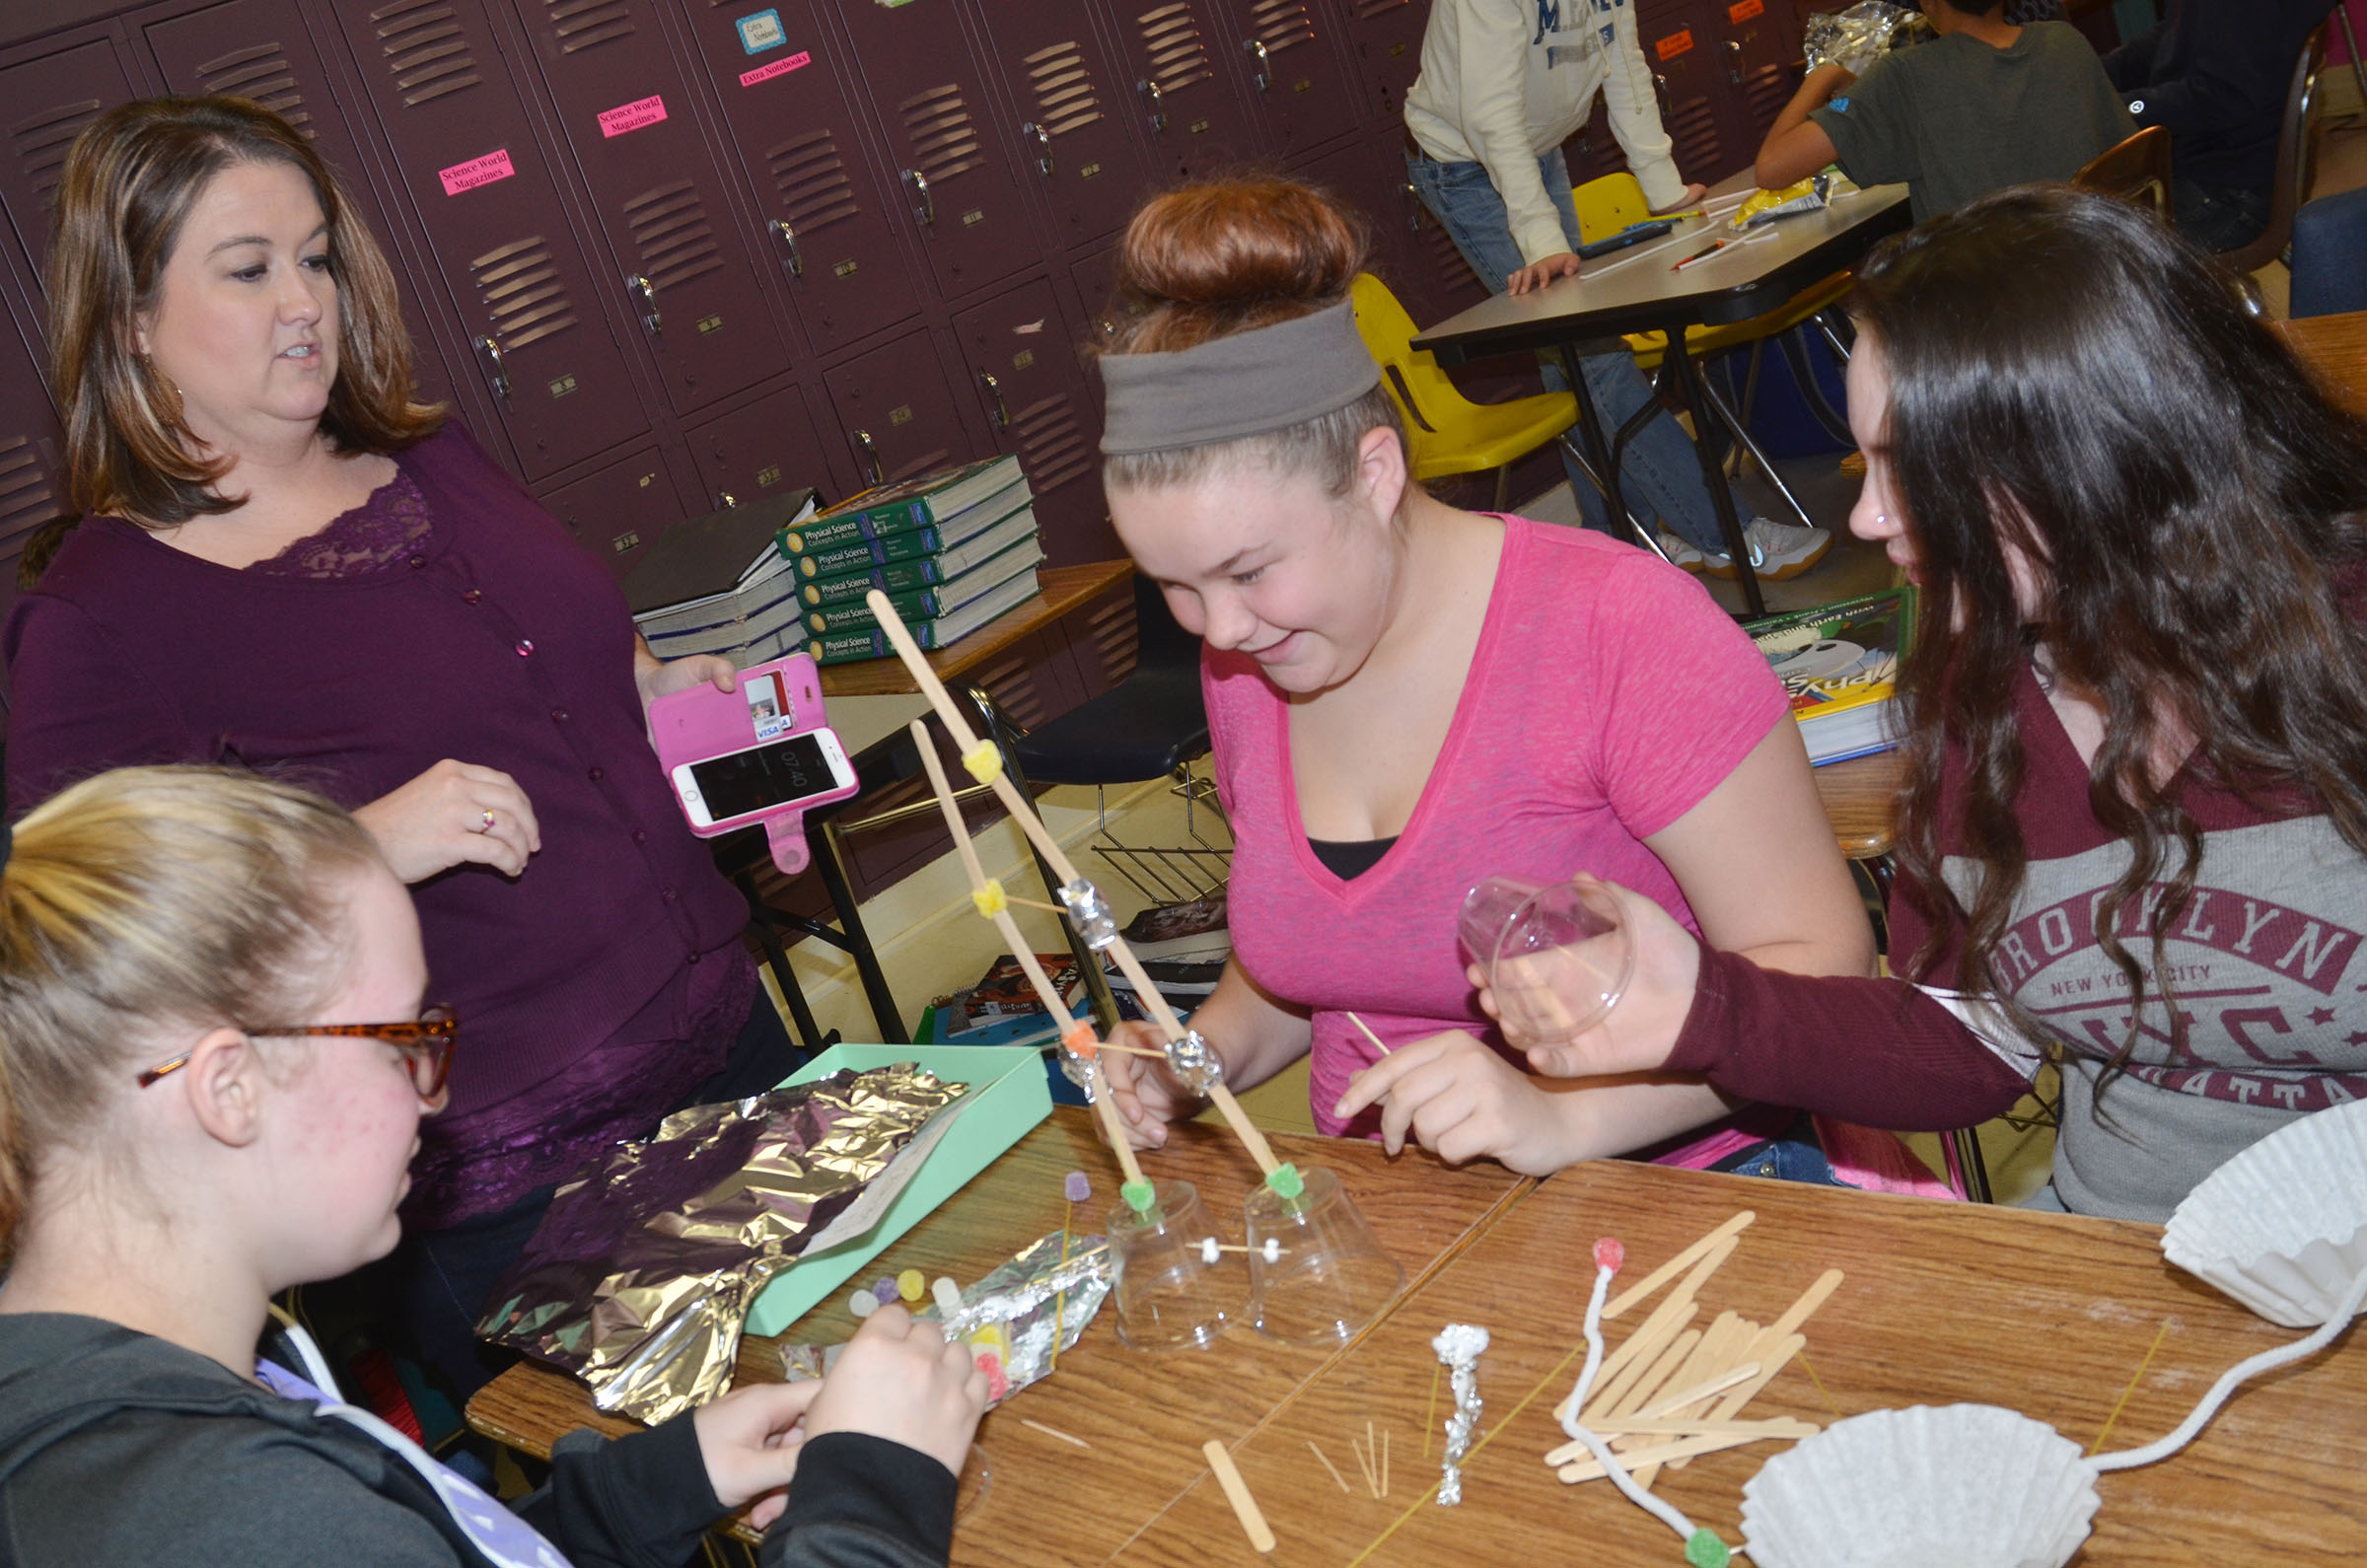 CMS integrated science teacher Amy Knifley watches as, from left, freshman Samantha Johnson, Summer Sluder and Summer Edwards build their structure with Popsicle sticks and gum drops.